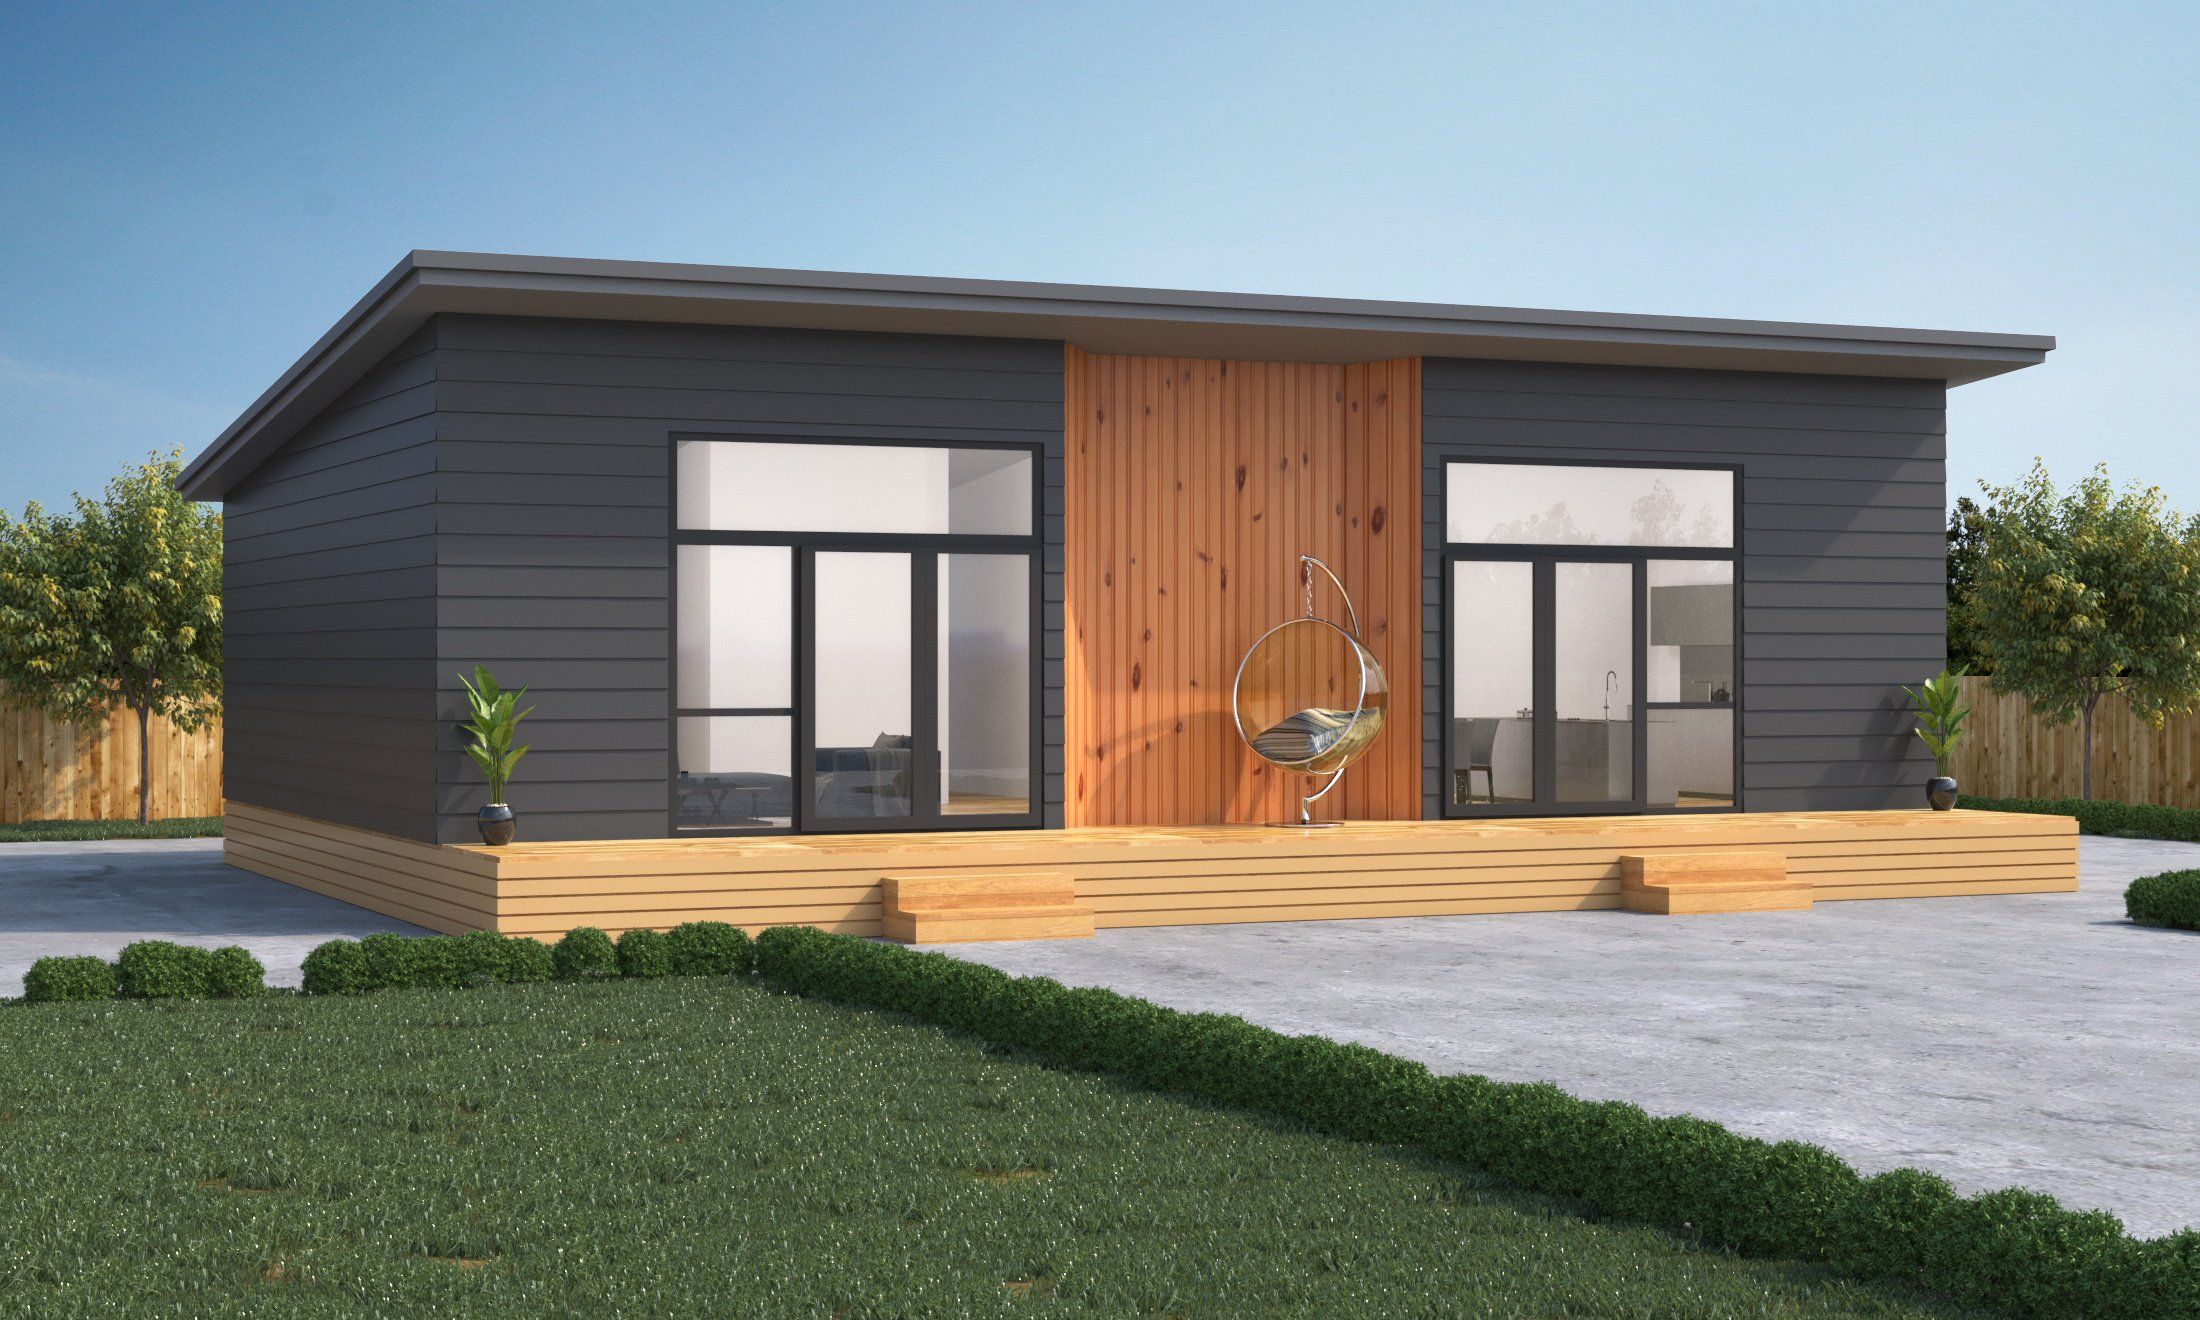 2 Bed Home Cheap And Affordable Prefab Homes Prefabricated Houses Modern Prefab Homes